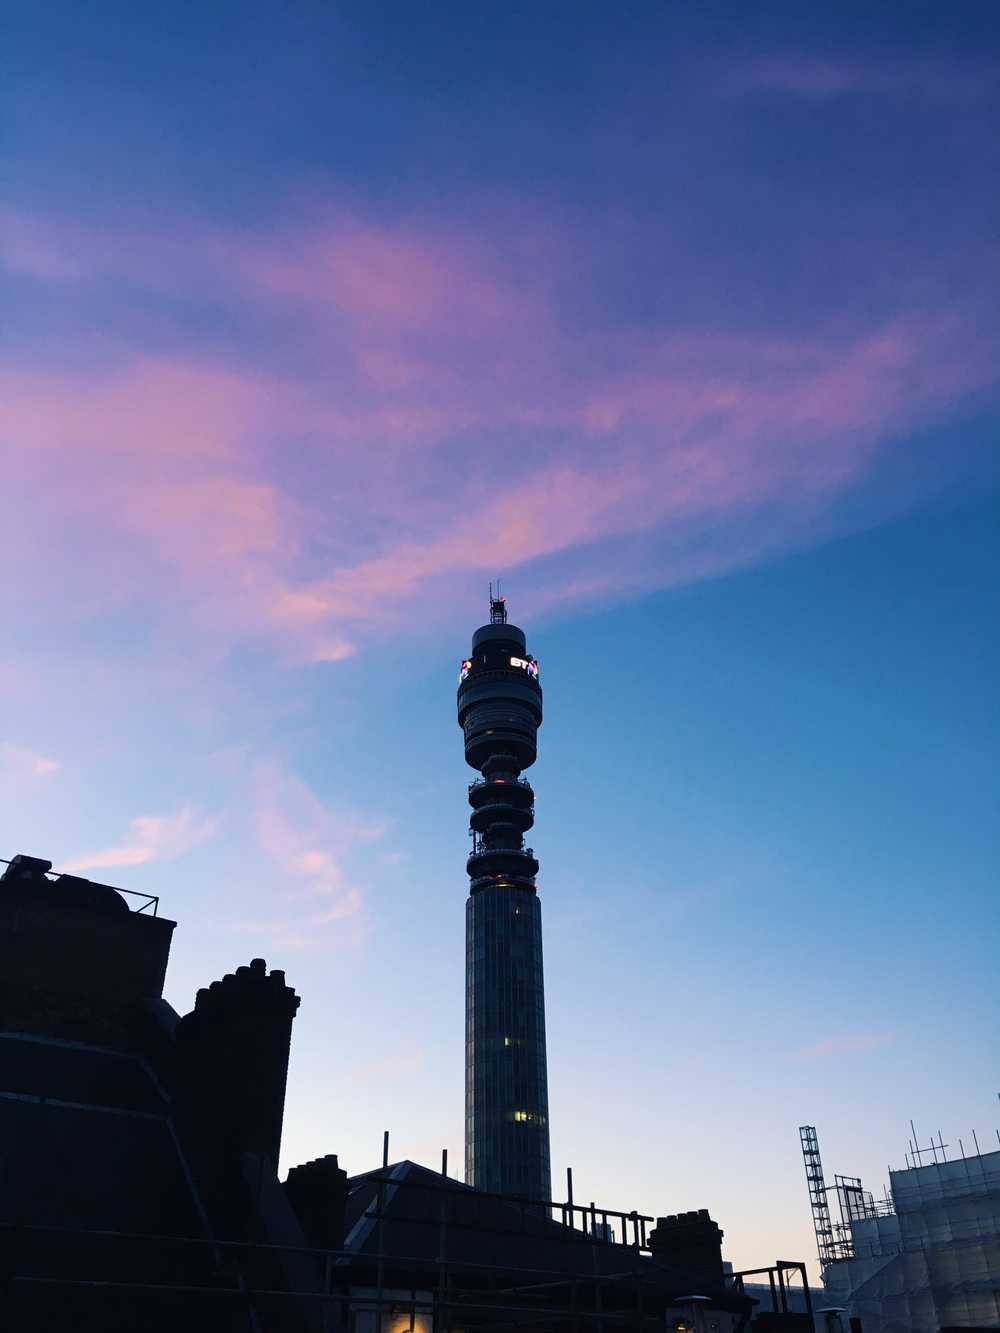 Overlooking the BT Tower.